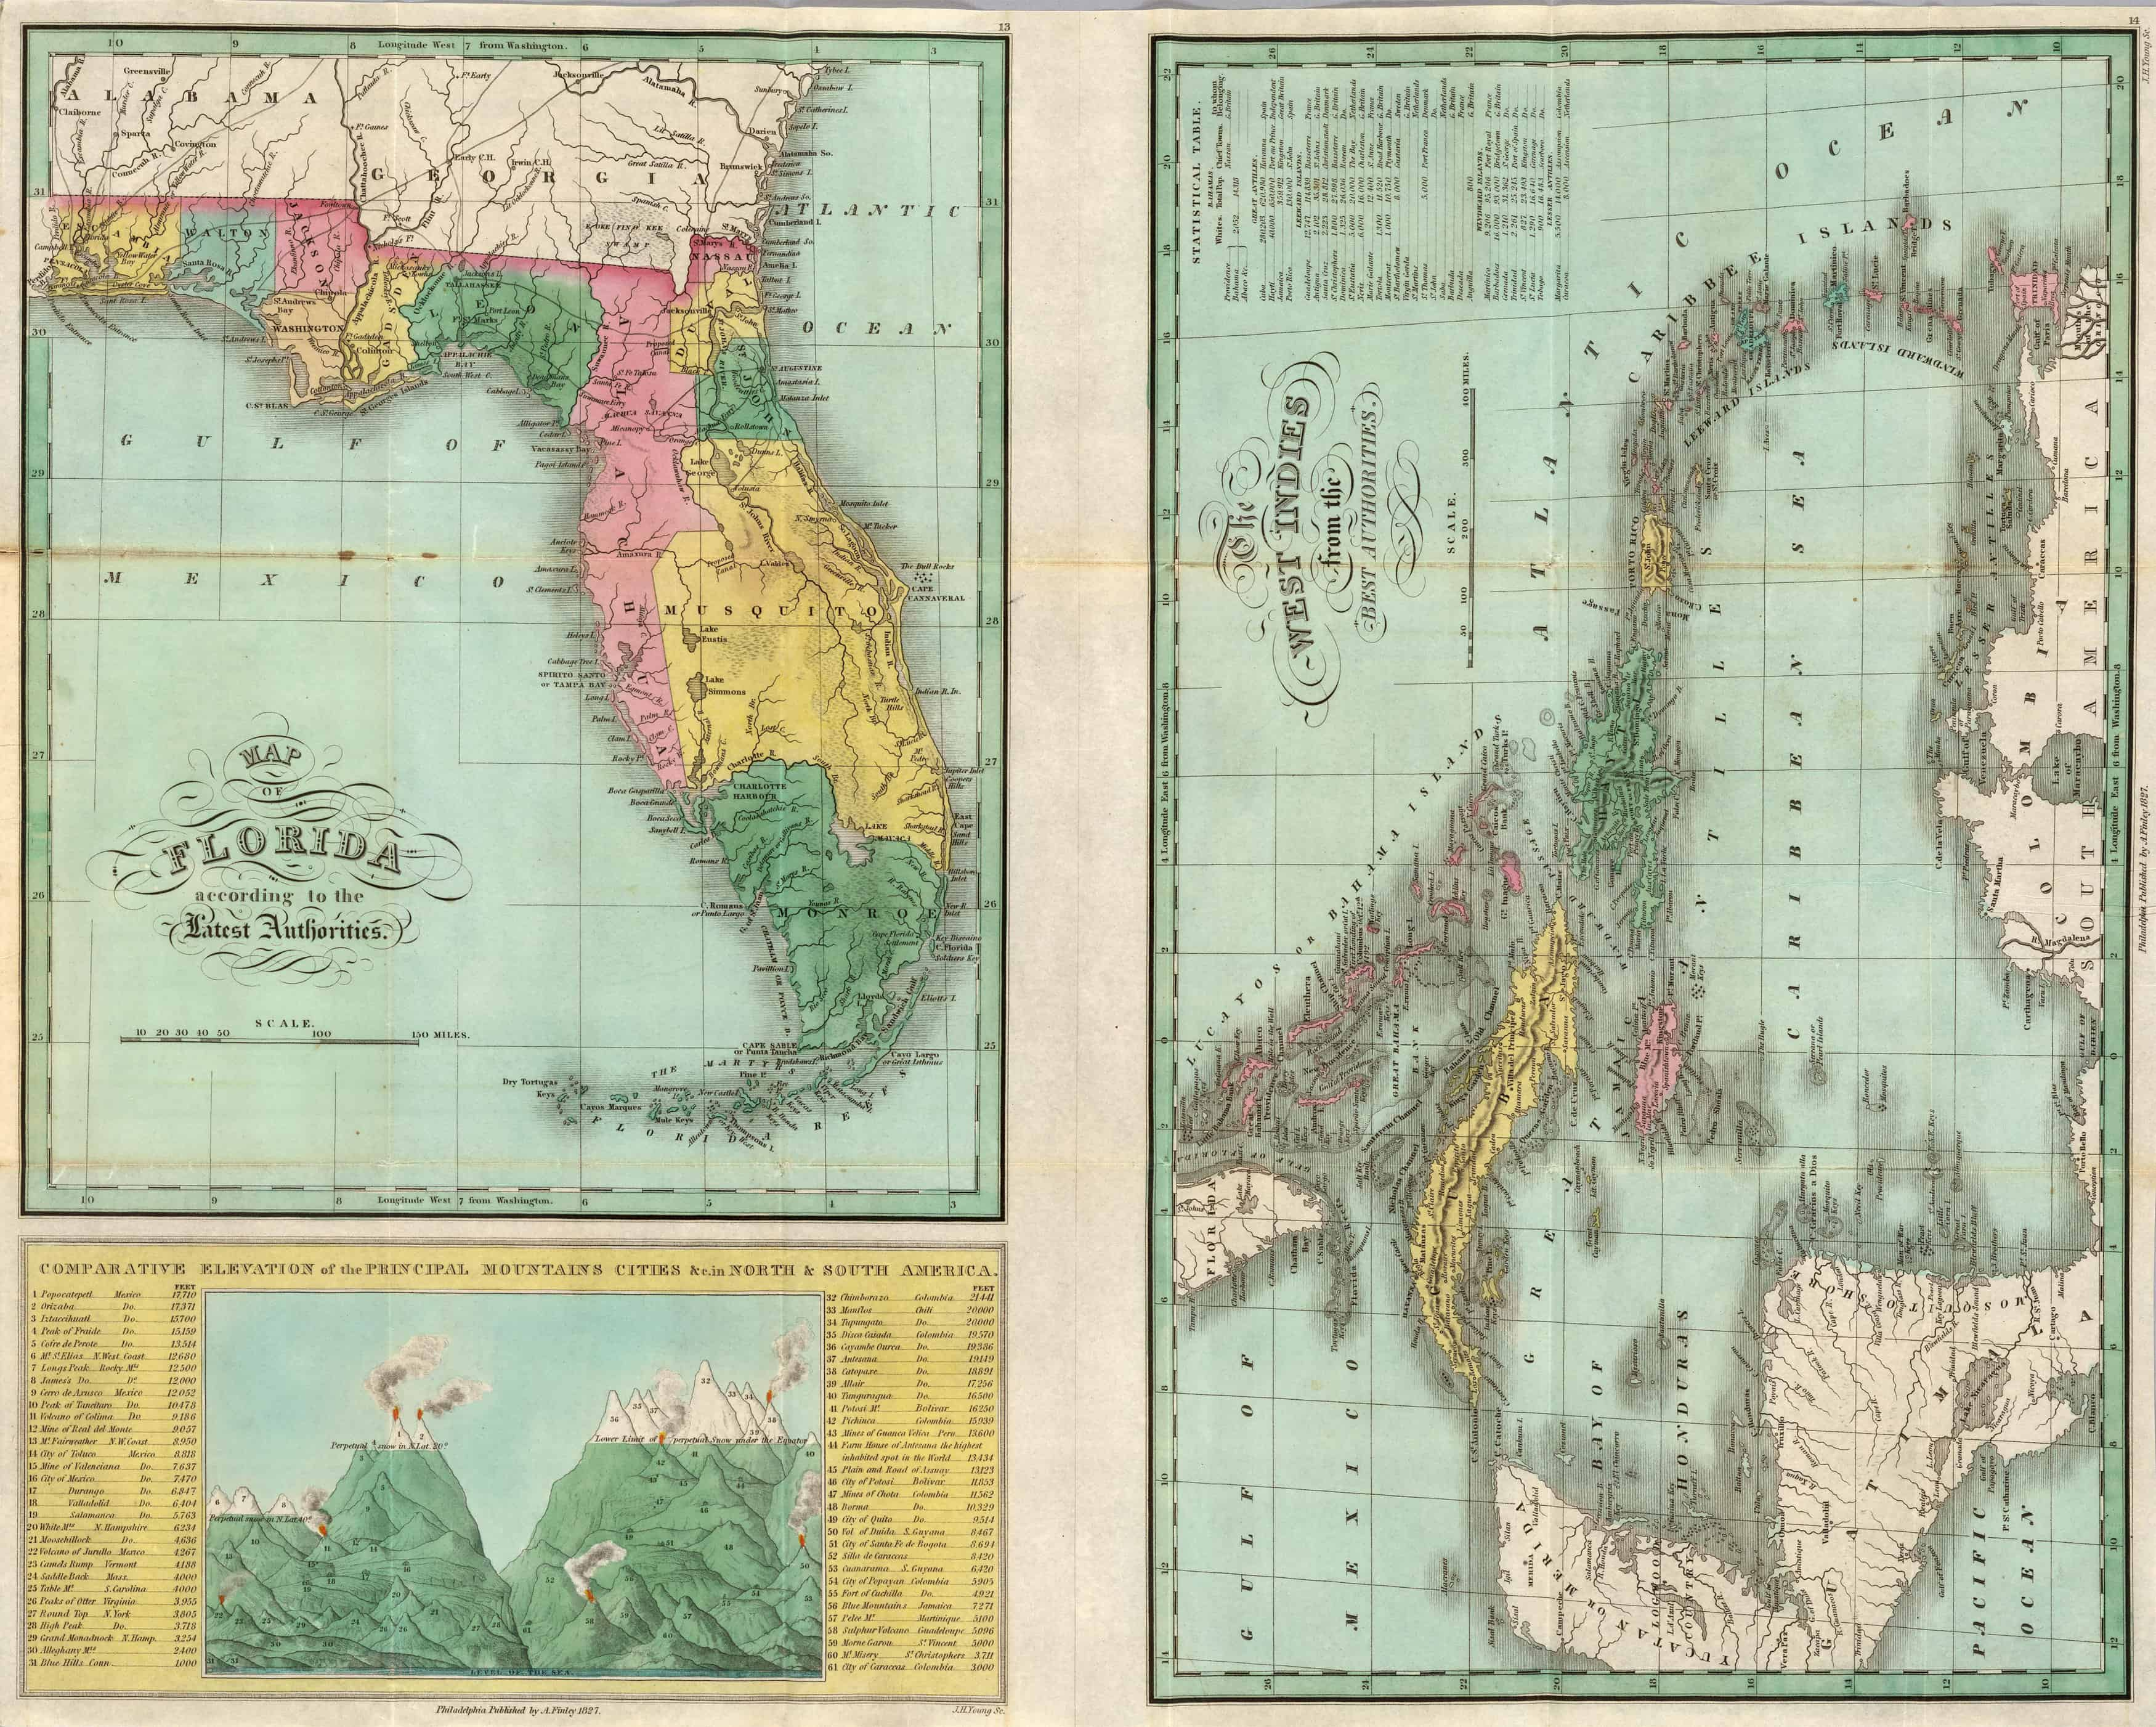 Maps of Florida - Historical, Statewide, Regional ... Indviual Indian States Map on